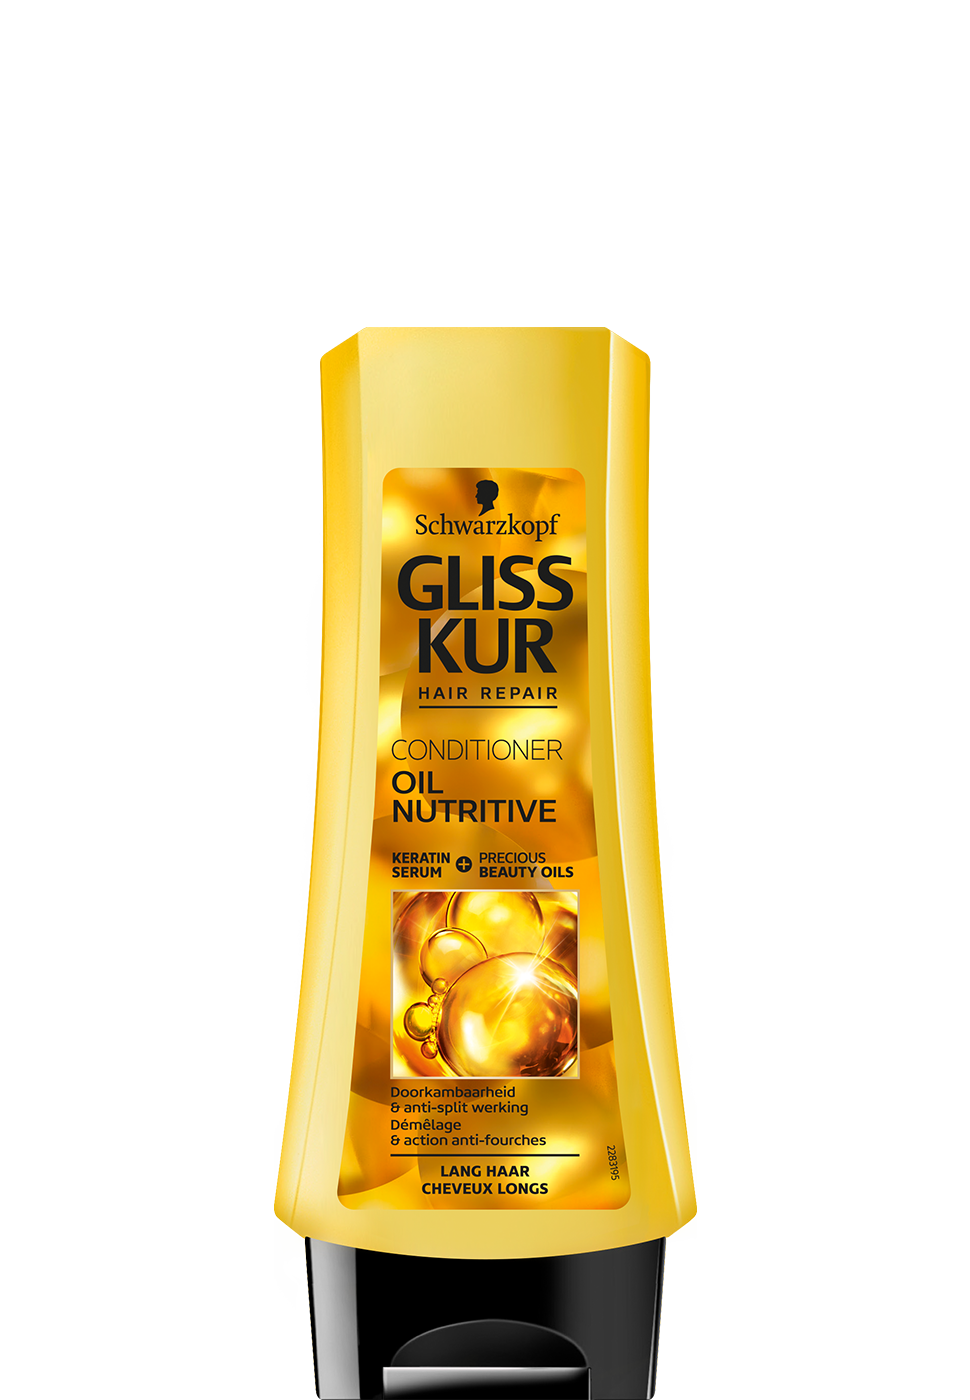 970x1400_Packs_2018_5410091712327-Gliss-Kur-Oil-Nutritive_Conditioner_200ml